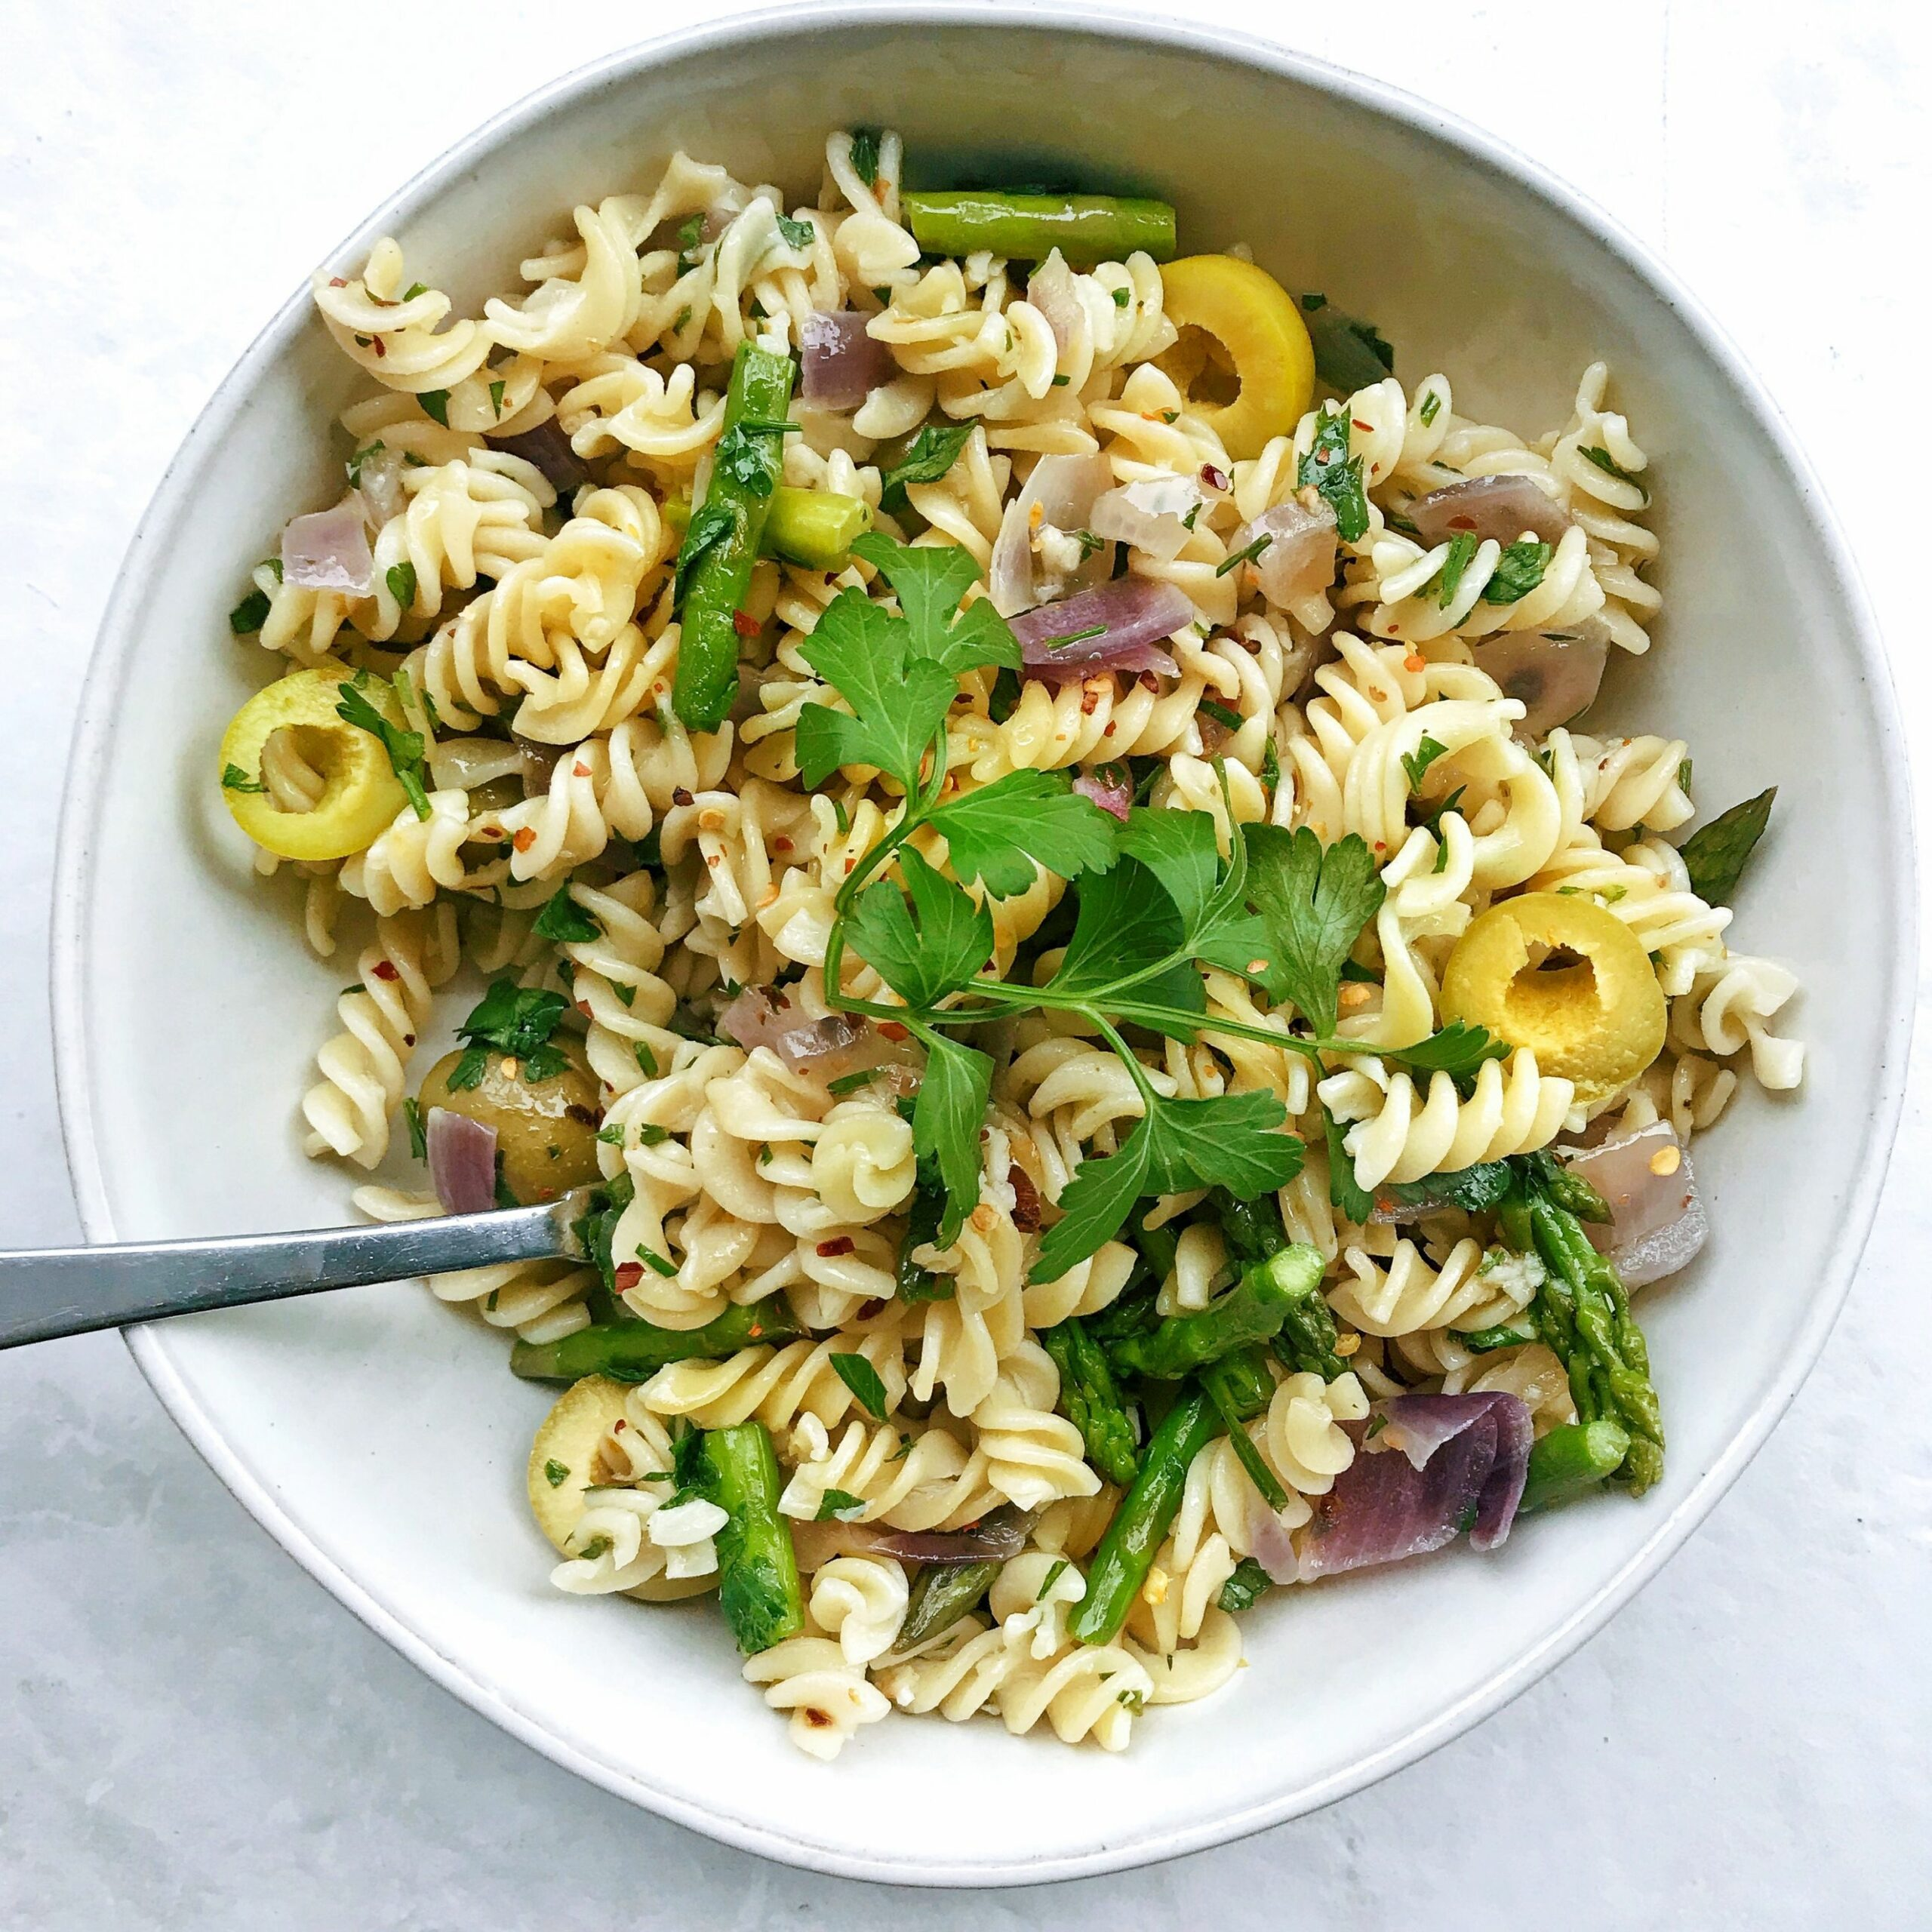 Garlic Olive Oil Quinoa Pasta with Gordal Olives from Spain - Cooking Quinoa Pasta